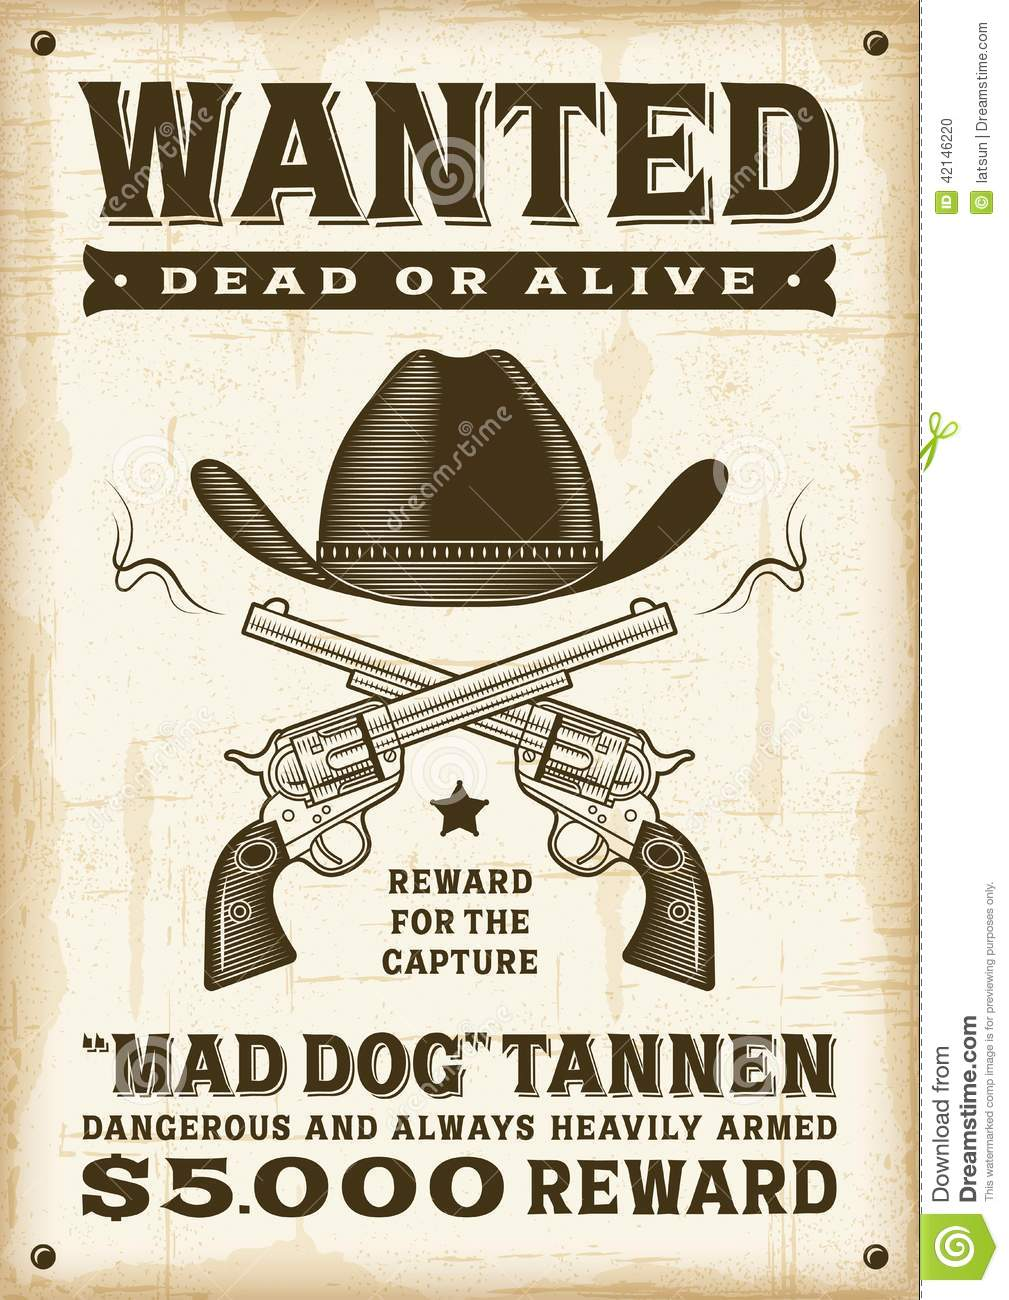 Vintage Western Wanted Poster Stock Vector Image 42146220 Vintage Western Wanted  Poster Woodcut Style Editable Eps